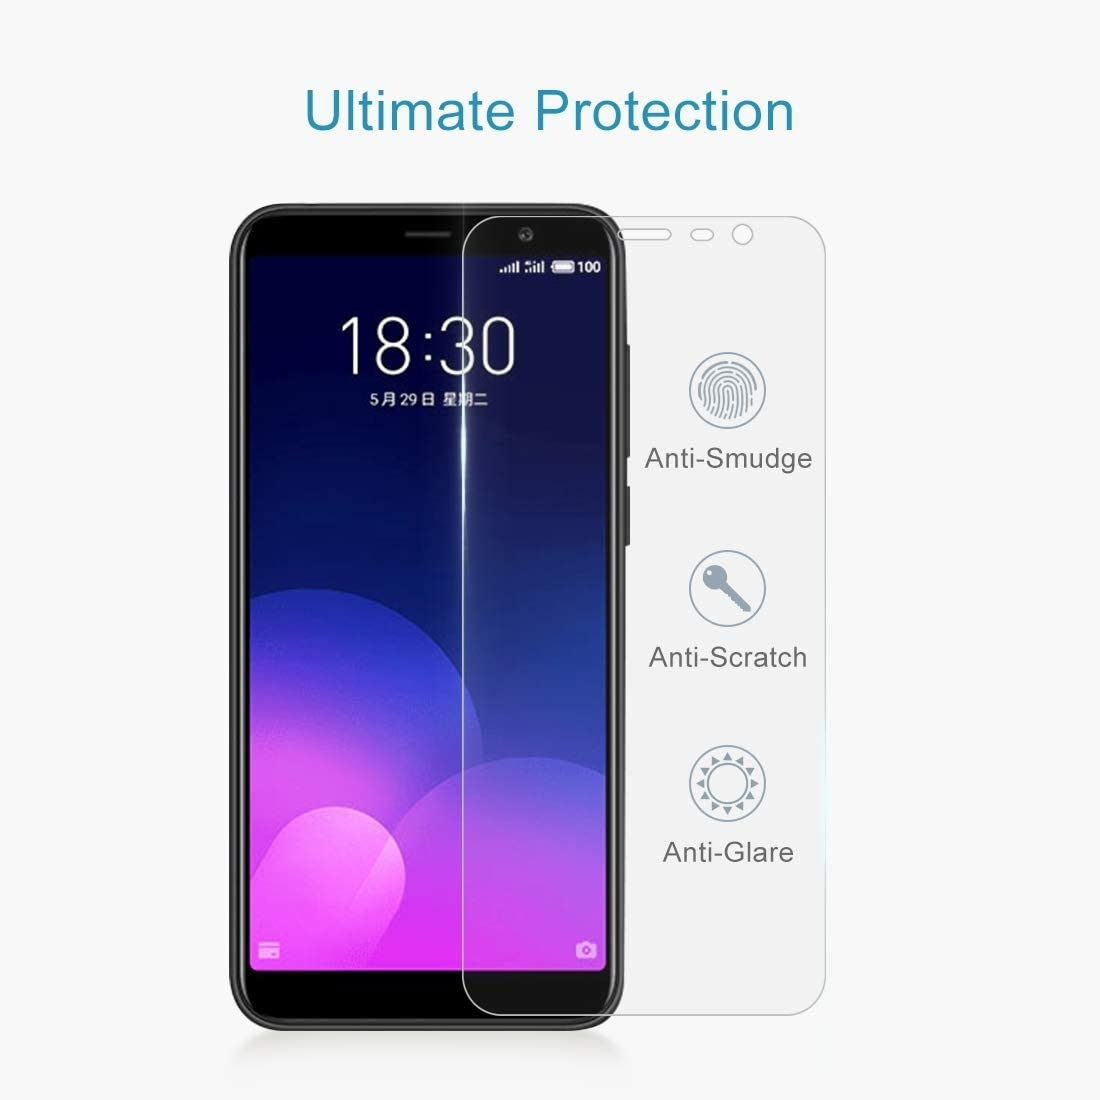 Ruanmaoshi Cell Phone Accessory 100 PCS 0.26mm 9H Surface Hardness 2.5D Full Screen Tempered Glass Film for Meizu M6T Phone Screen Protectors